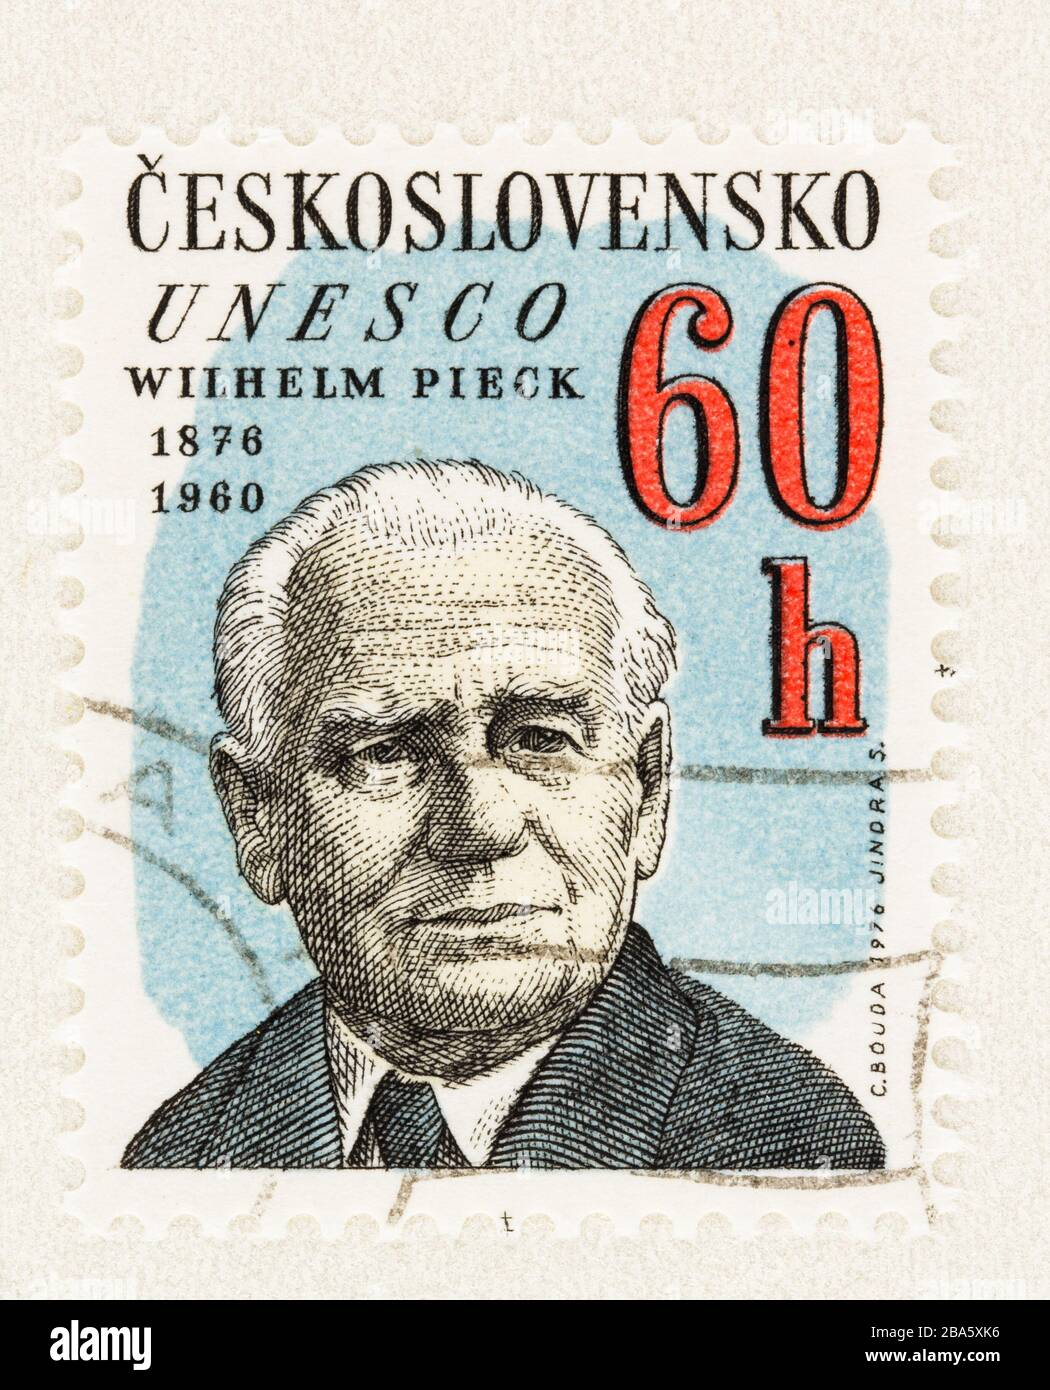 SEATTLE WASHINGTON - March 25, 2020: Close up of Czechoslovakia UNESCO postage stamp featuring President of DDR Wilhelm Pieck, issued in 1976 Stock Photo